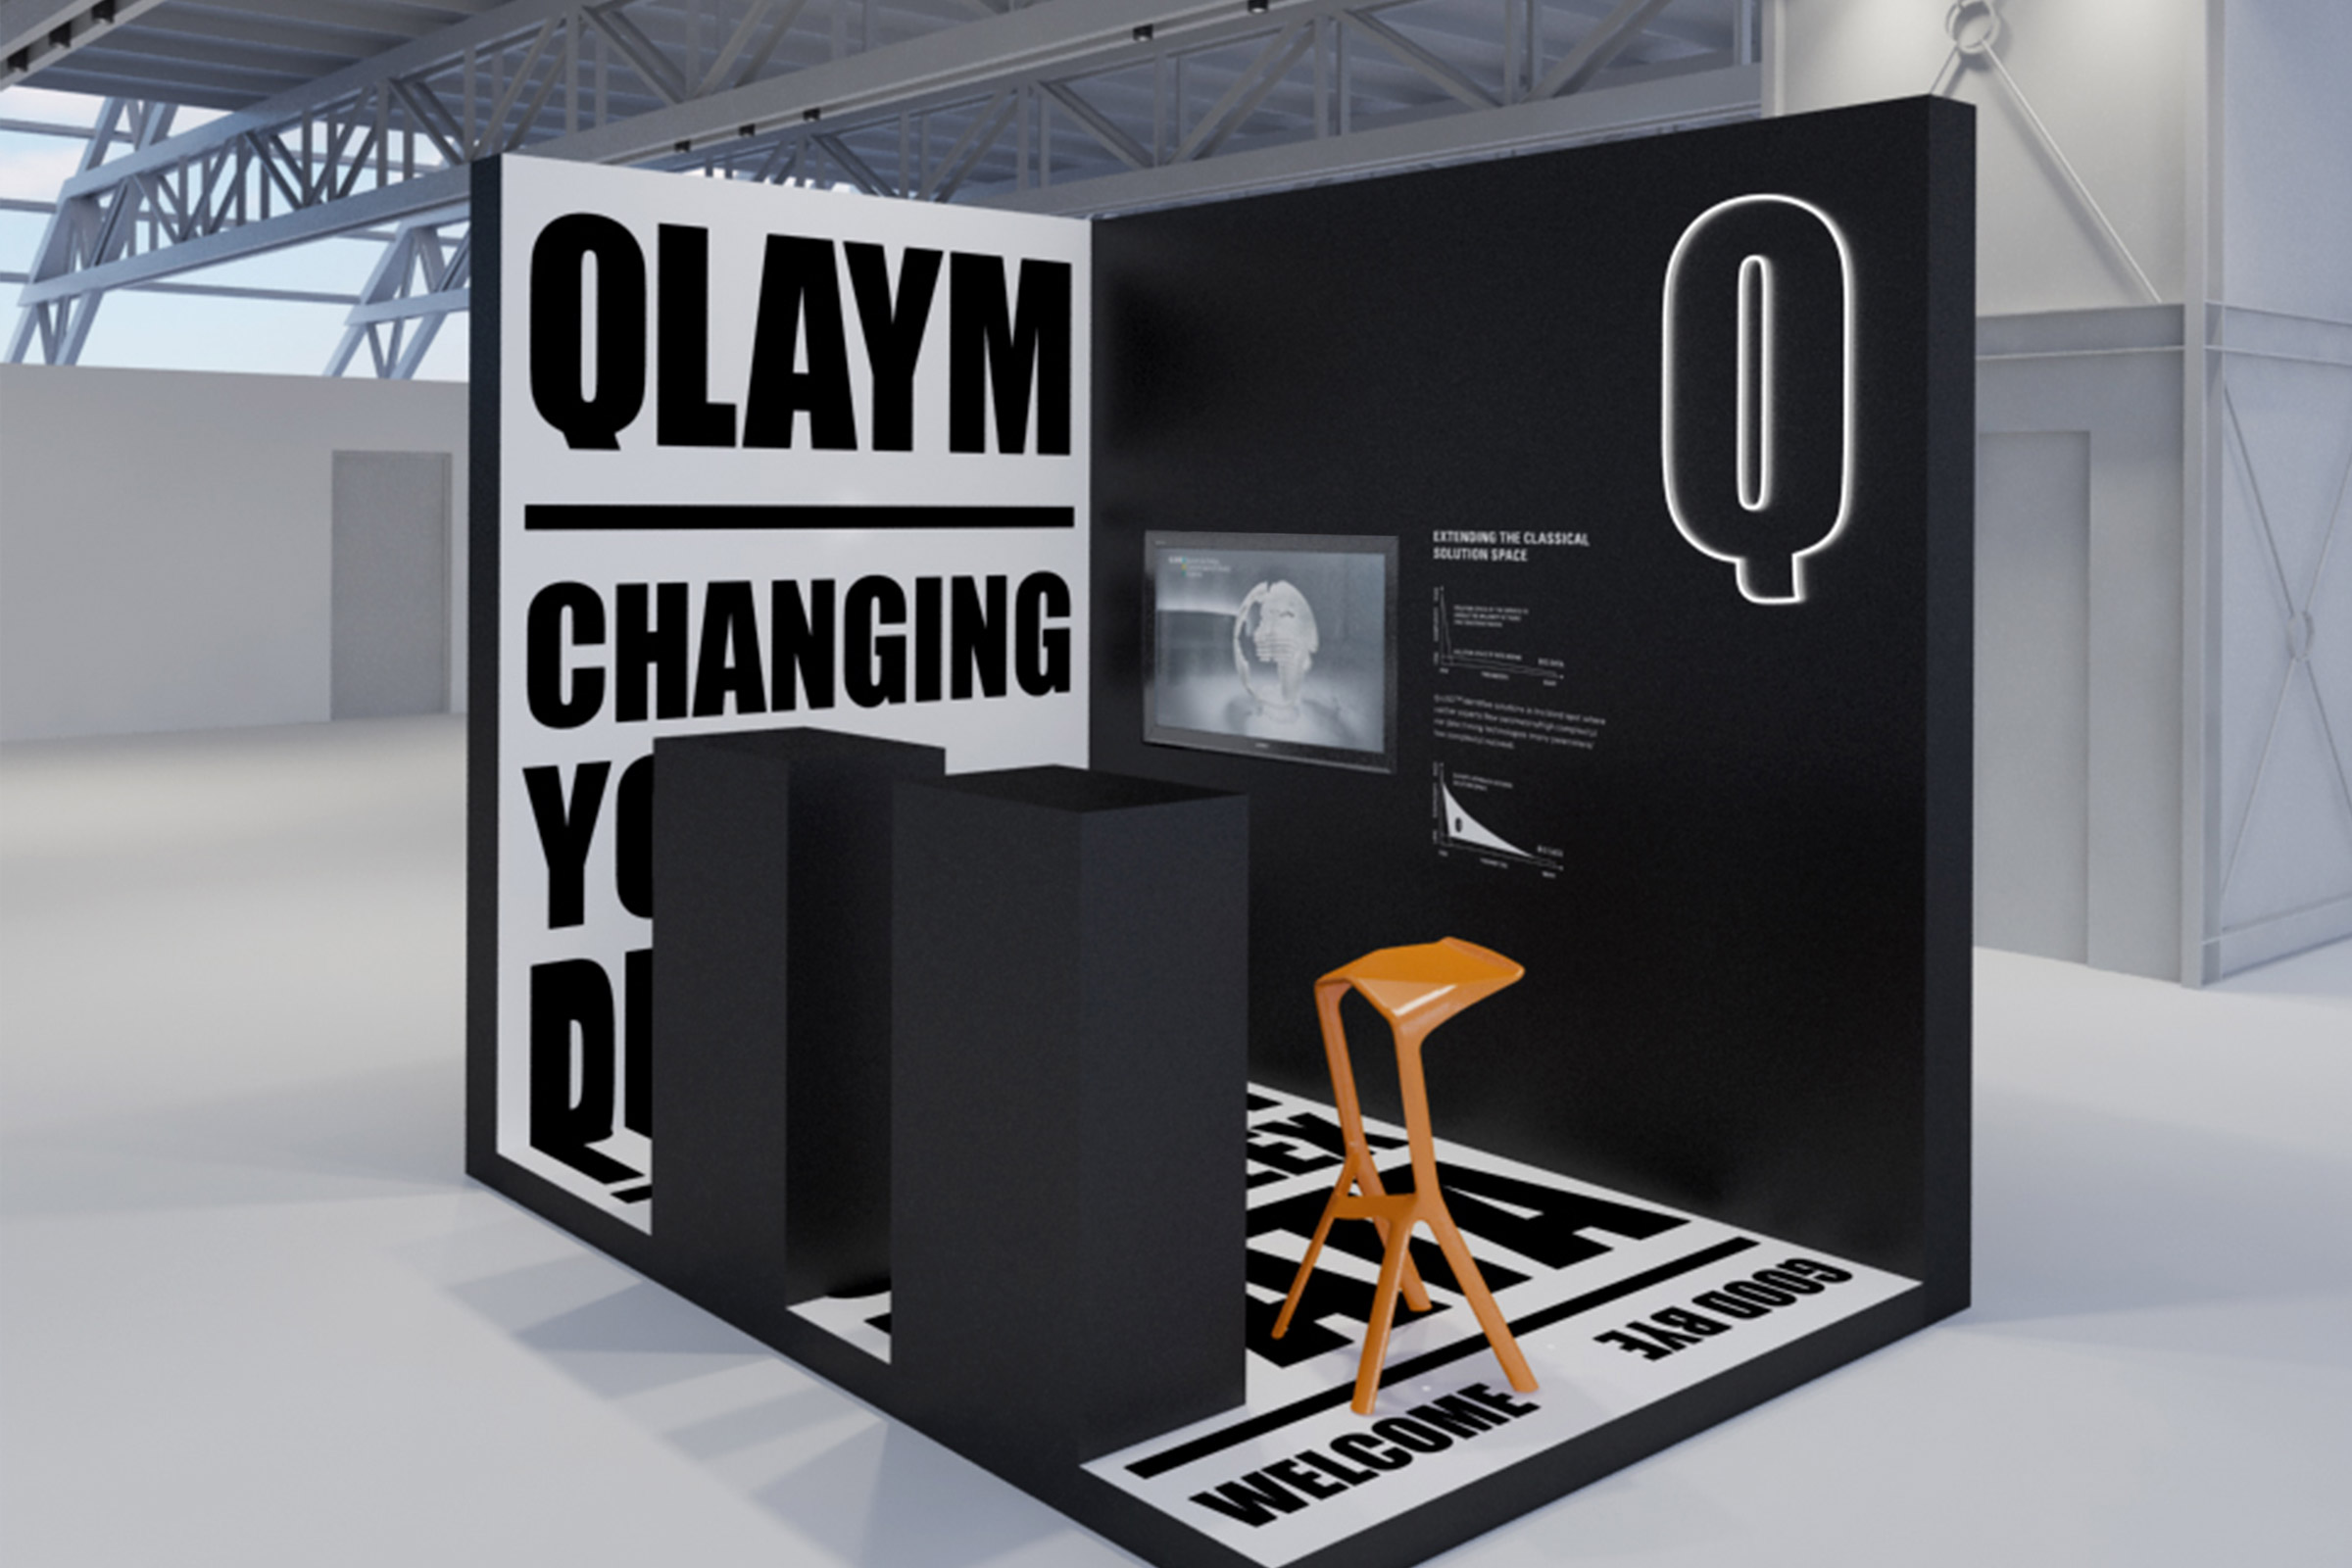 messestand, predictive medicine, big date, change perspective, corporate design